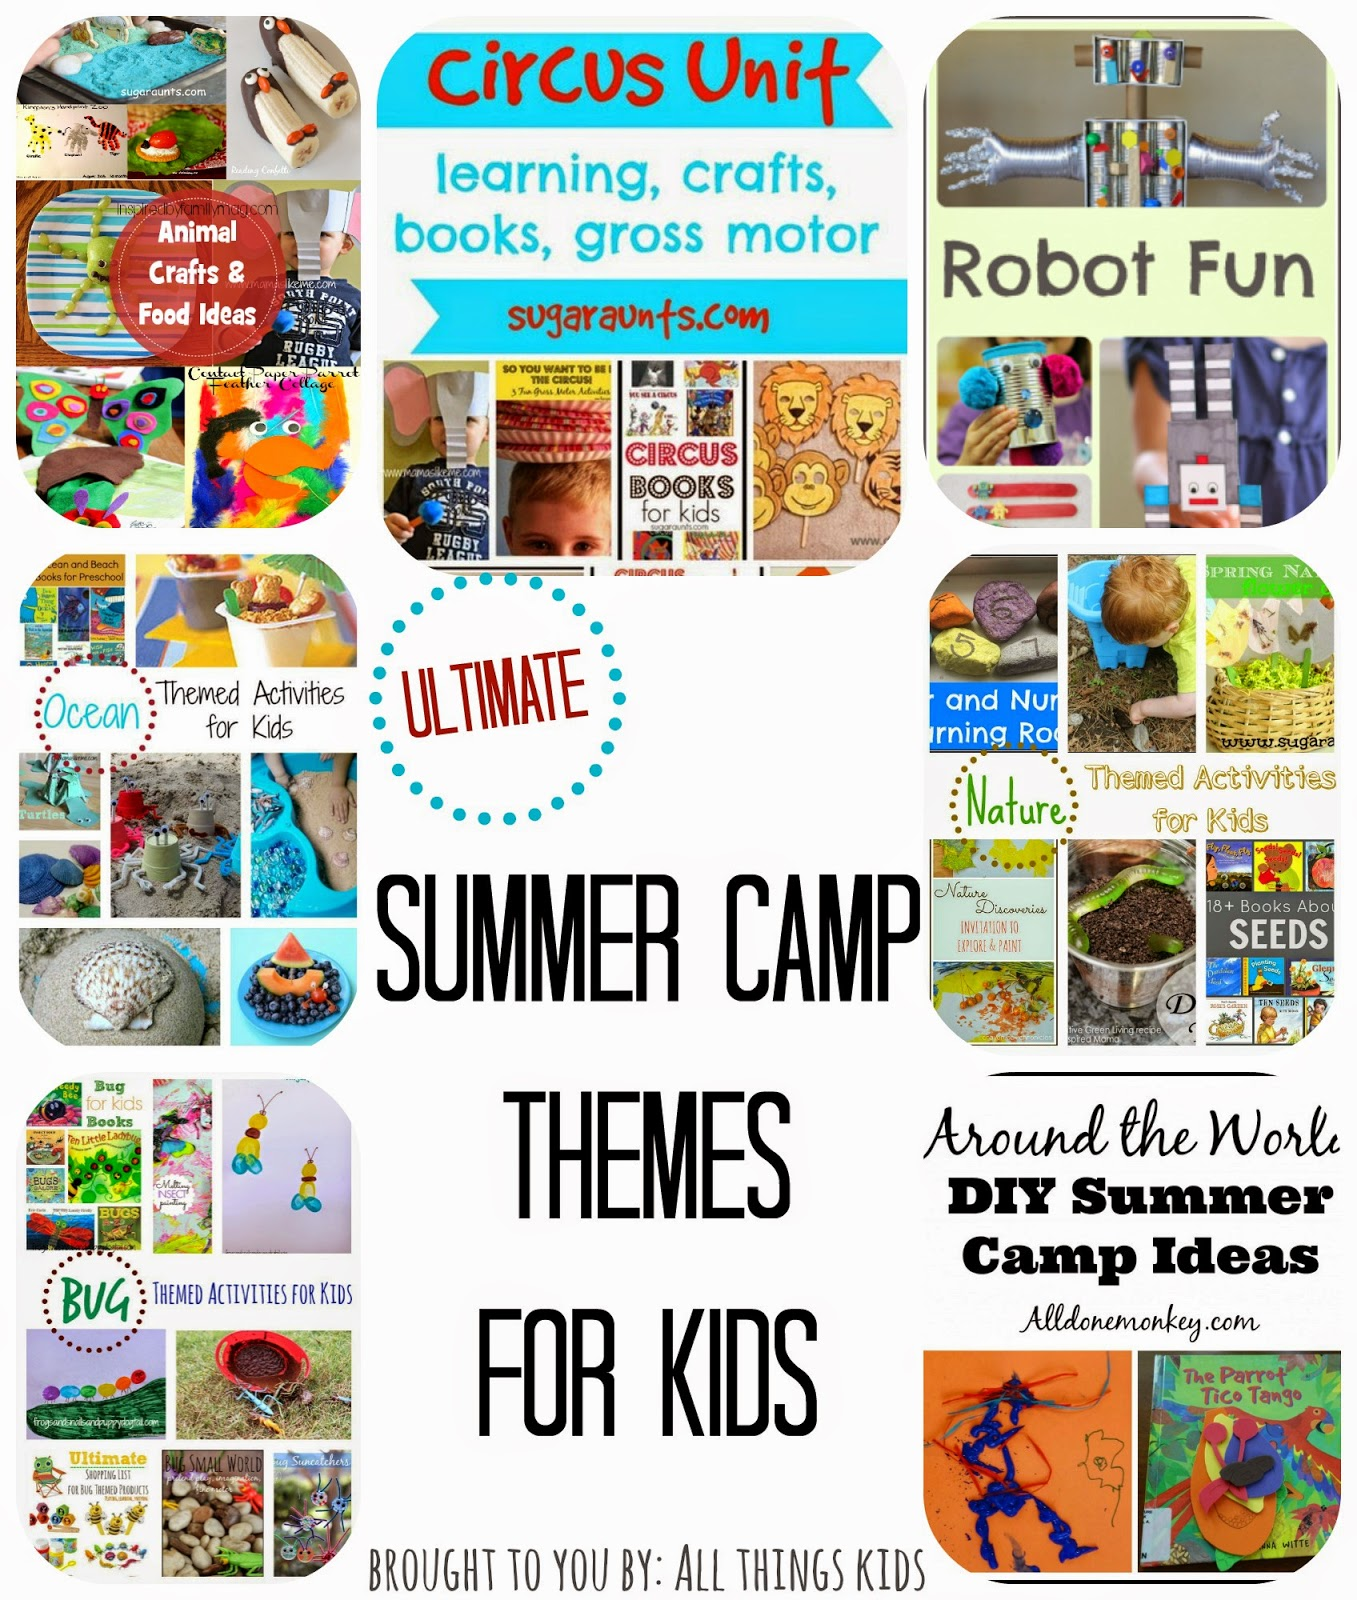 Summer Camp Themes for Kids